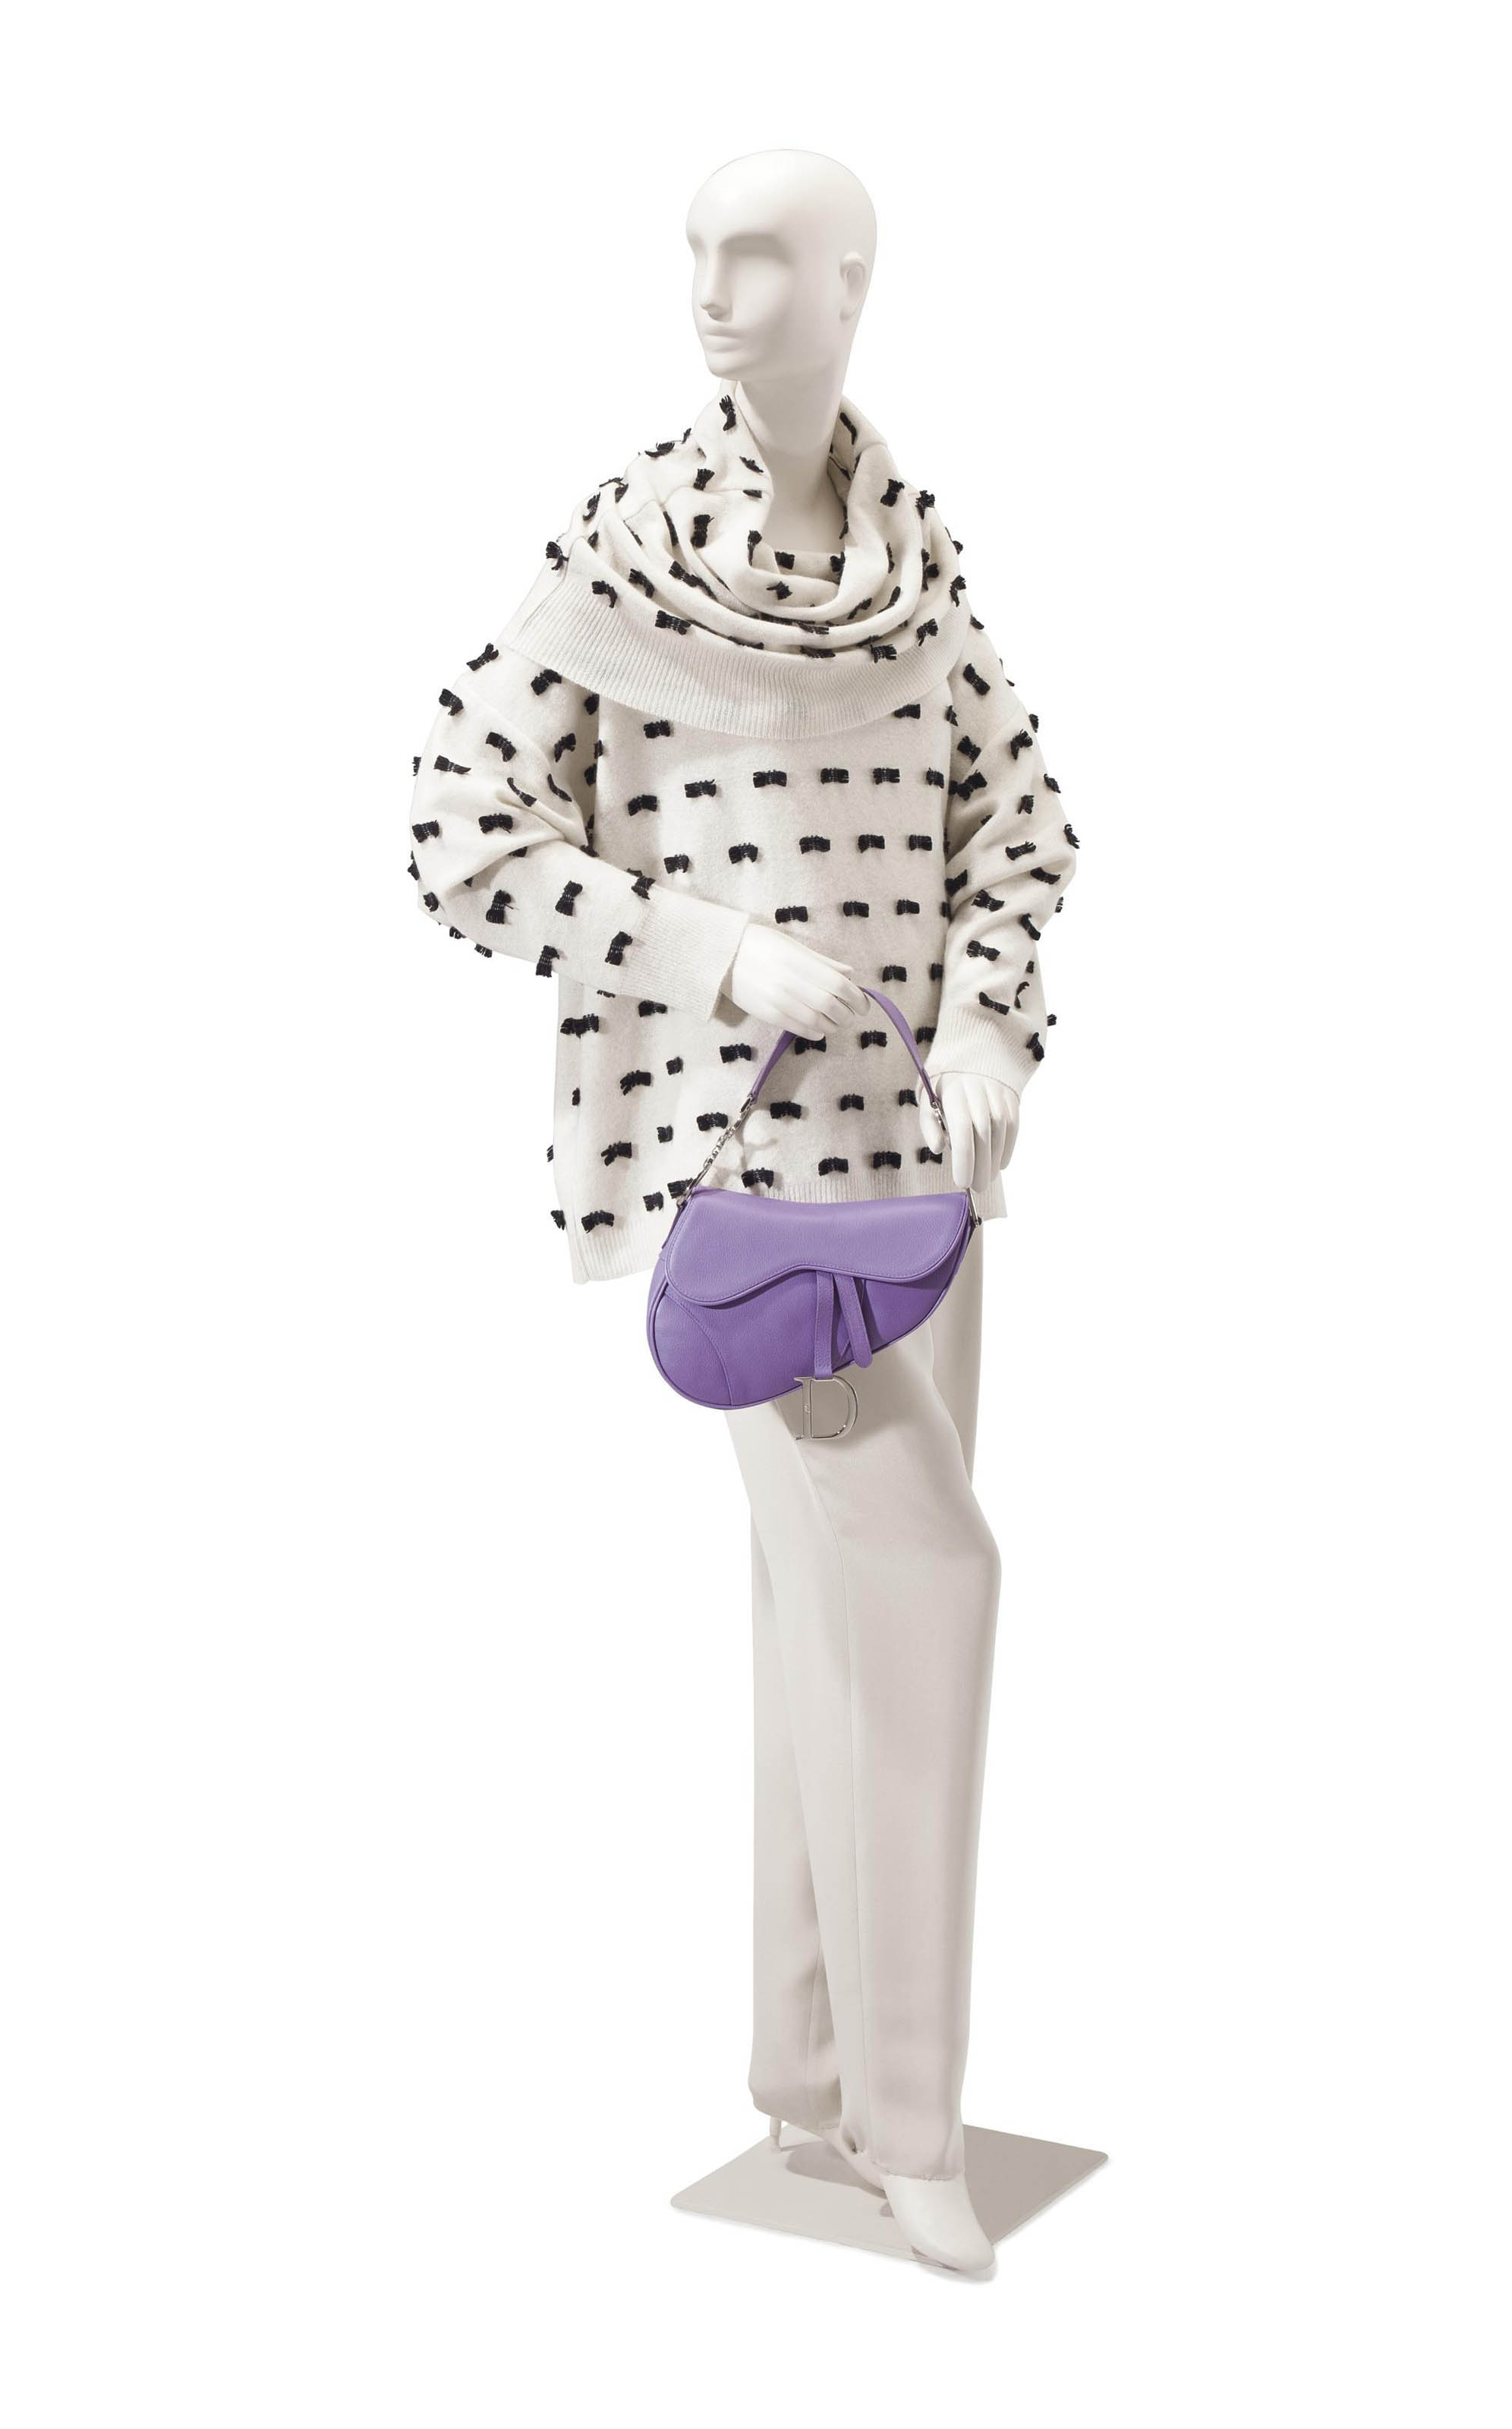 A GALLIANO WHITE CASHMERE SWEATER TRIMMED WITH BLACK BOWS AND A CHRISTIAN DIOR SADDLE BAG